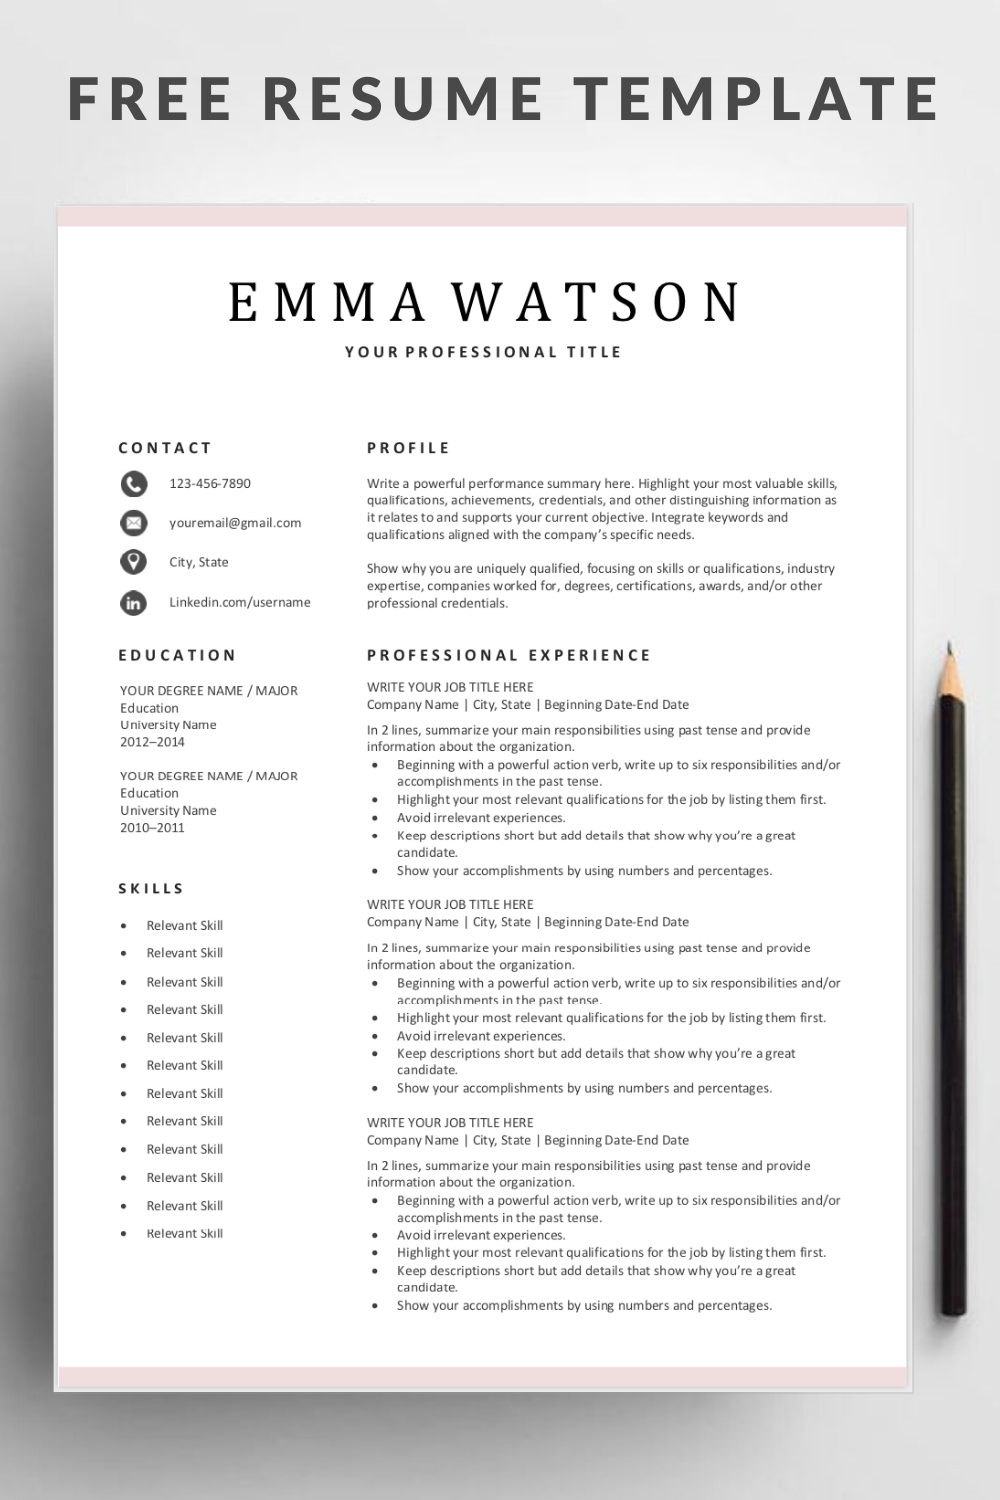 Simple Resume Template Download for Free Resume Template